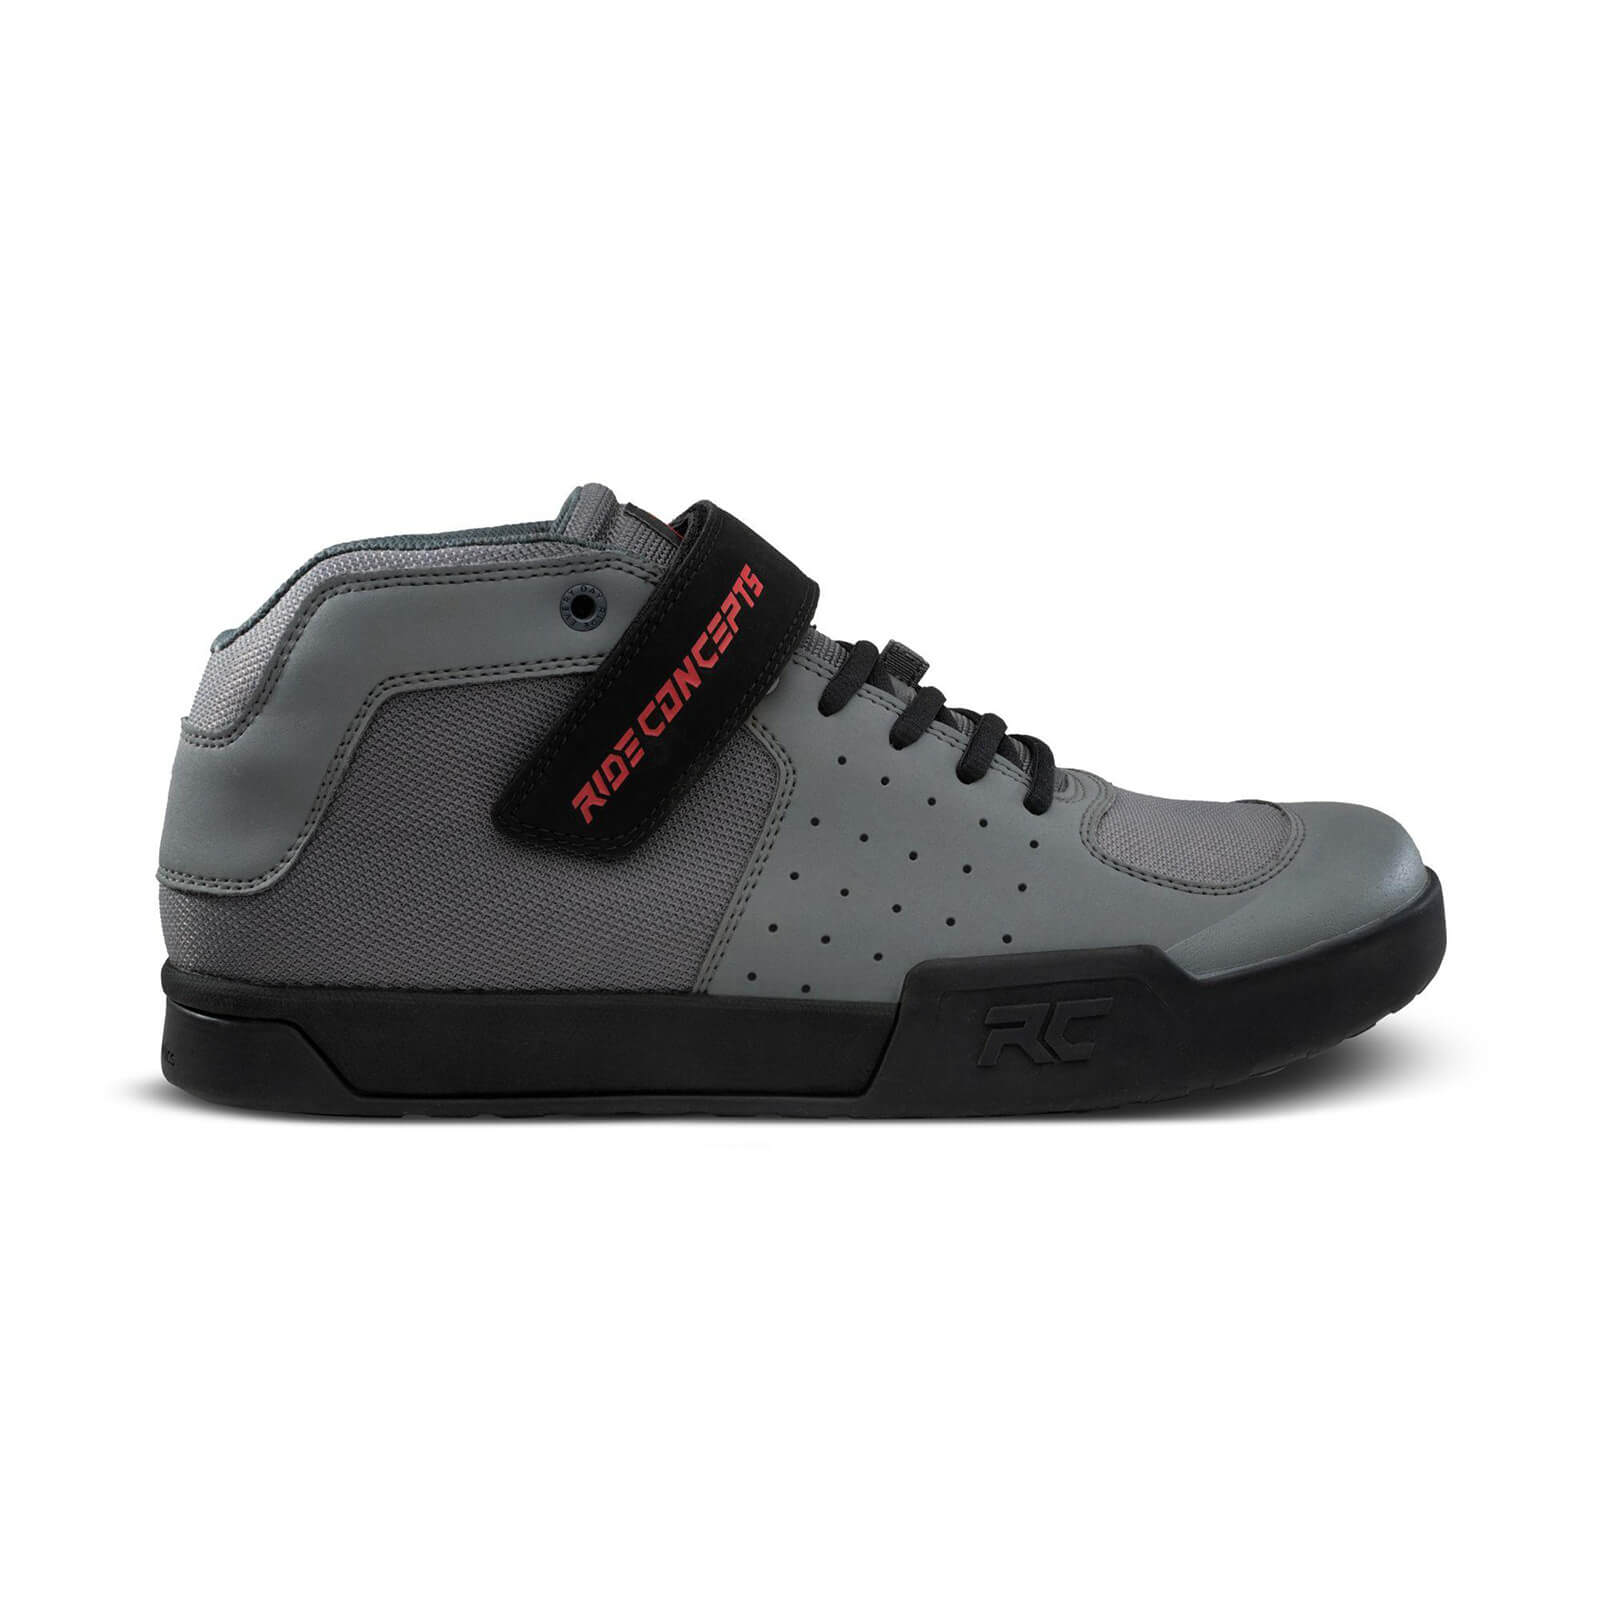 Image of Ride Concepts Wildcat Flat MTB Shoes - UK 6/EU 40 - Charcoal/Red